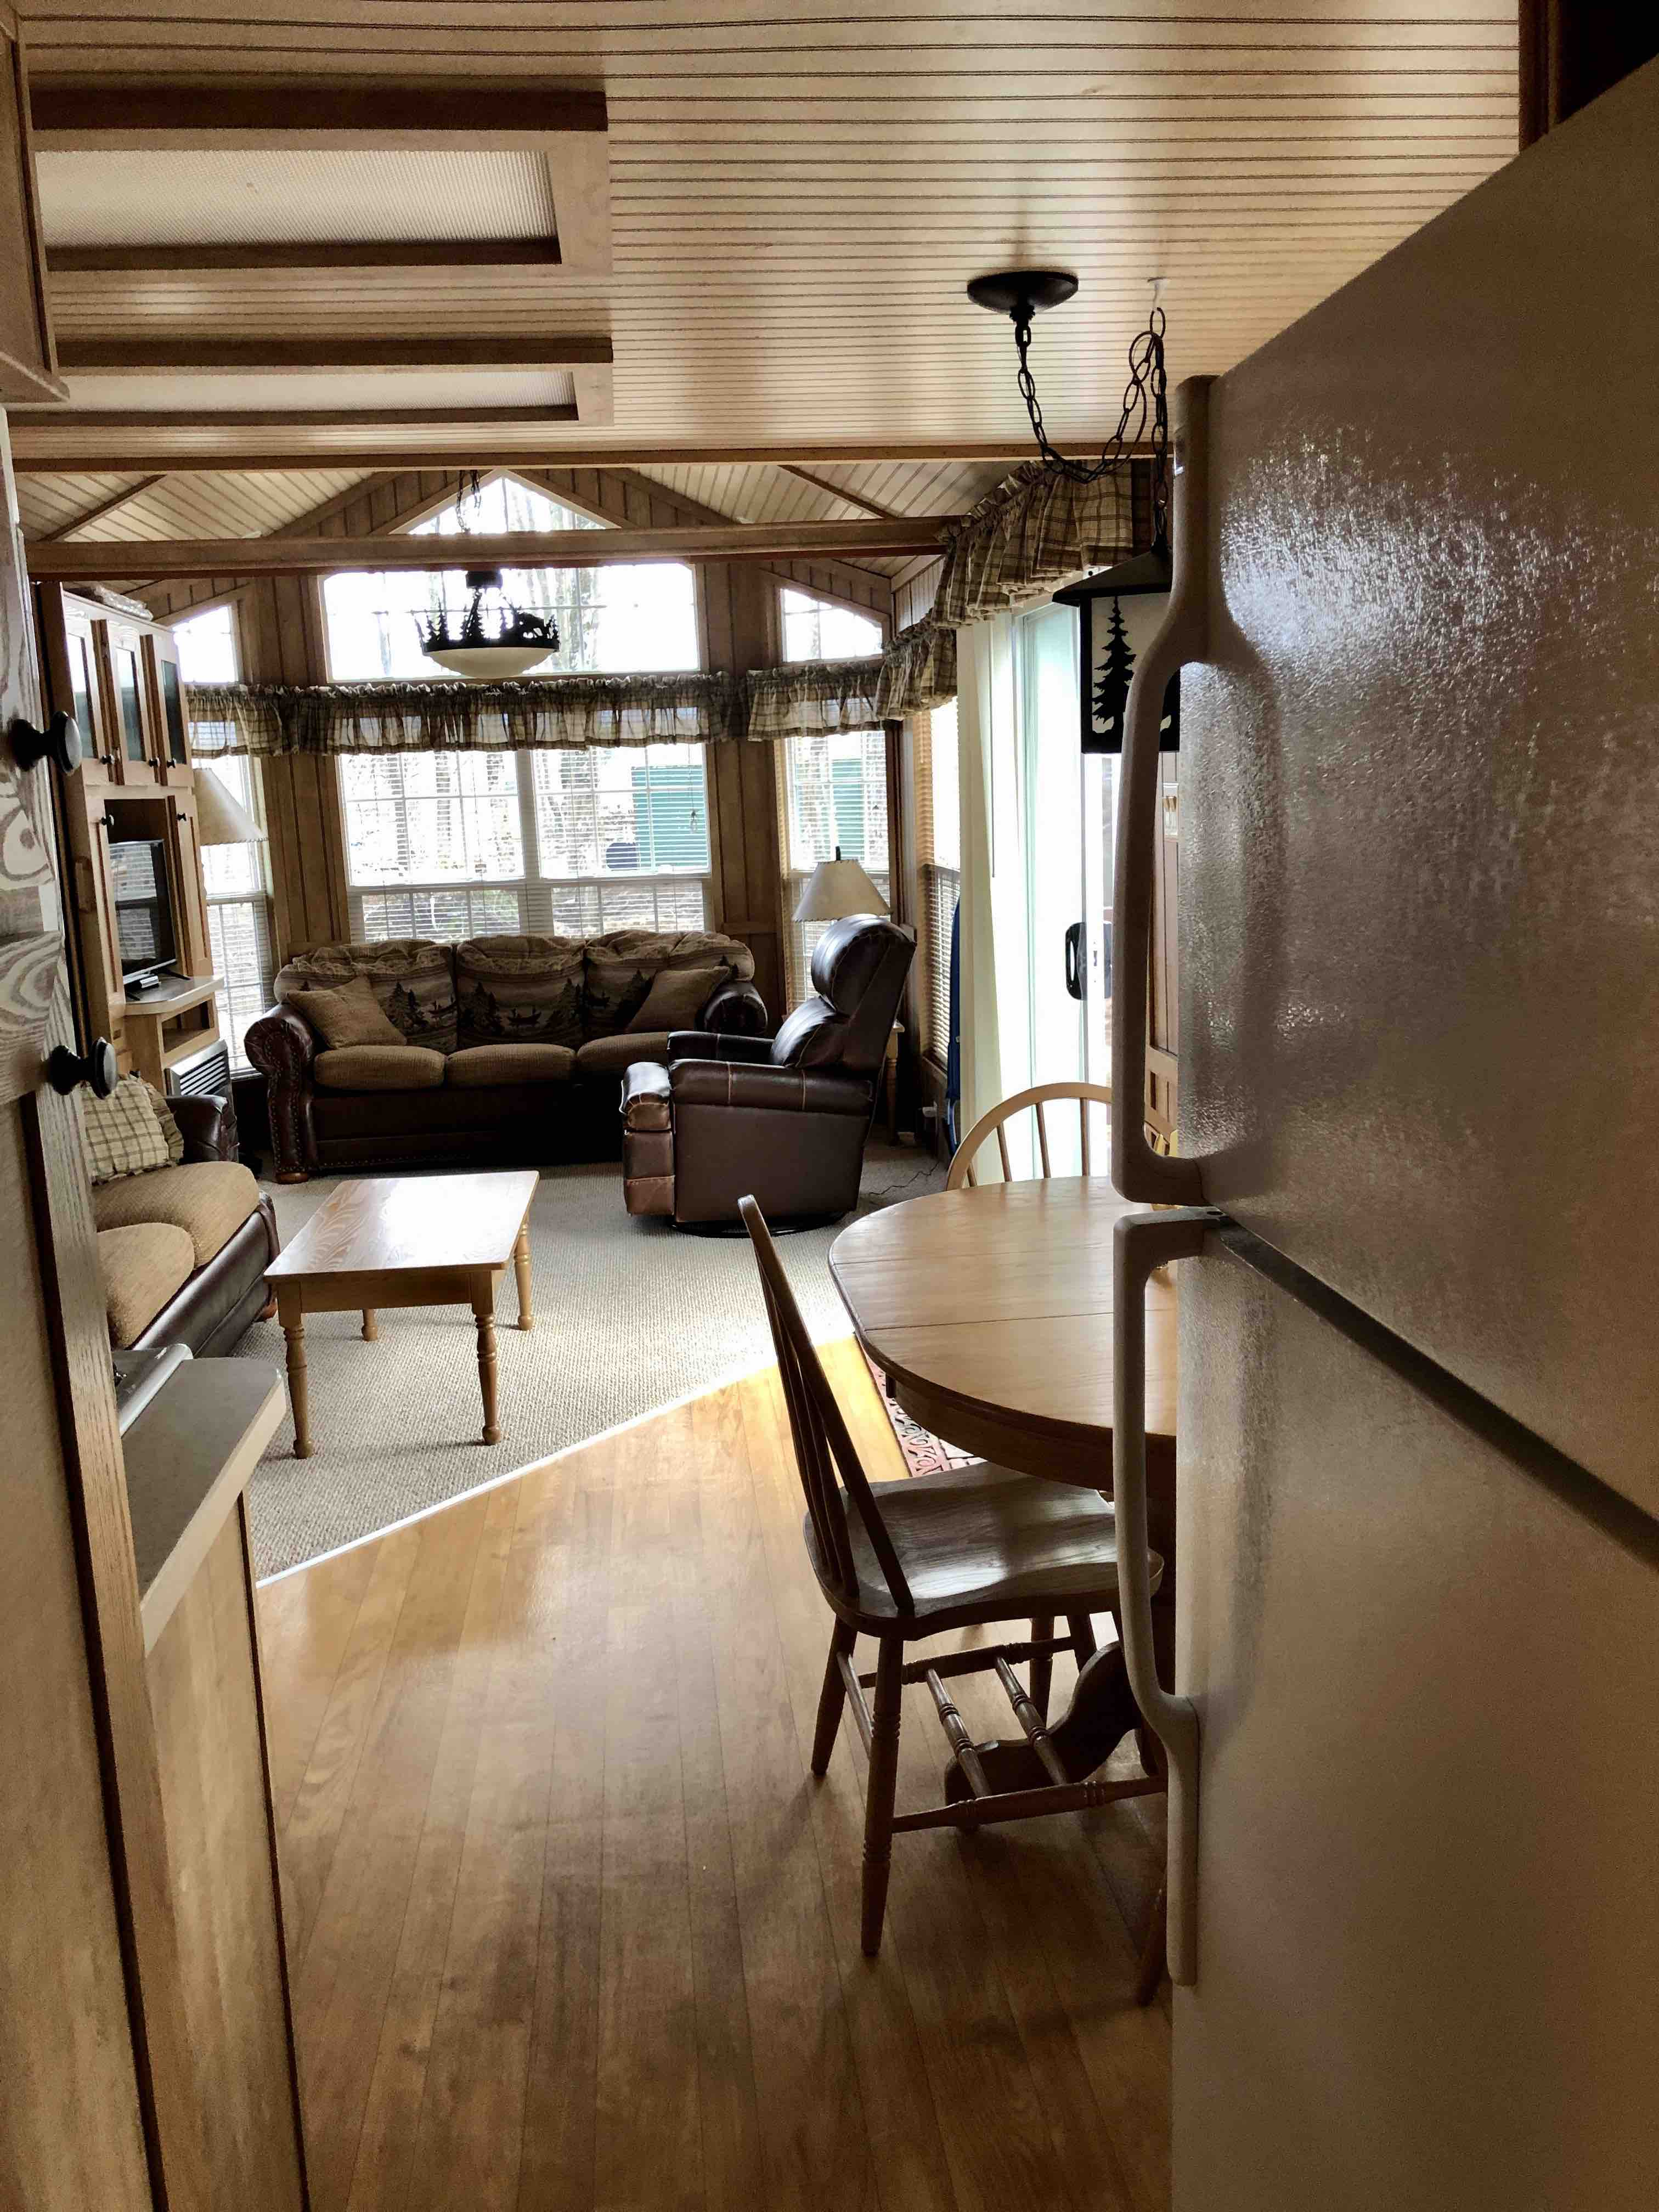 Cabin On The Farm - Farm stays for Rent in Moreau, New York ...